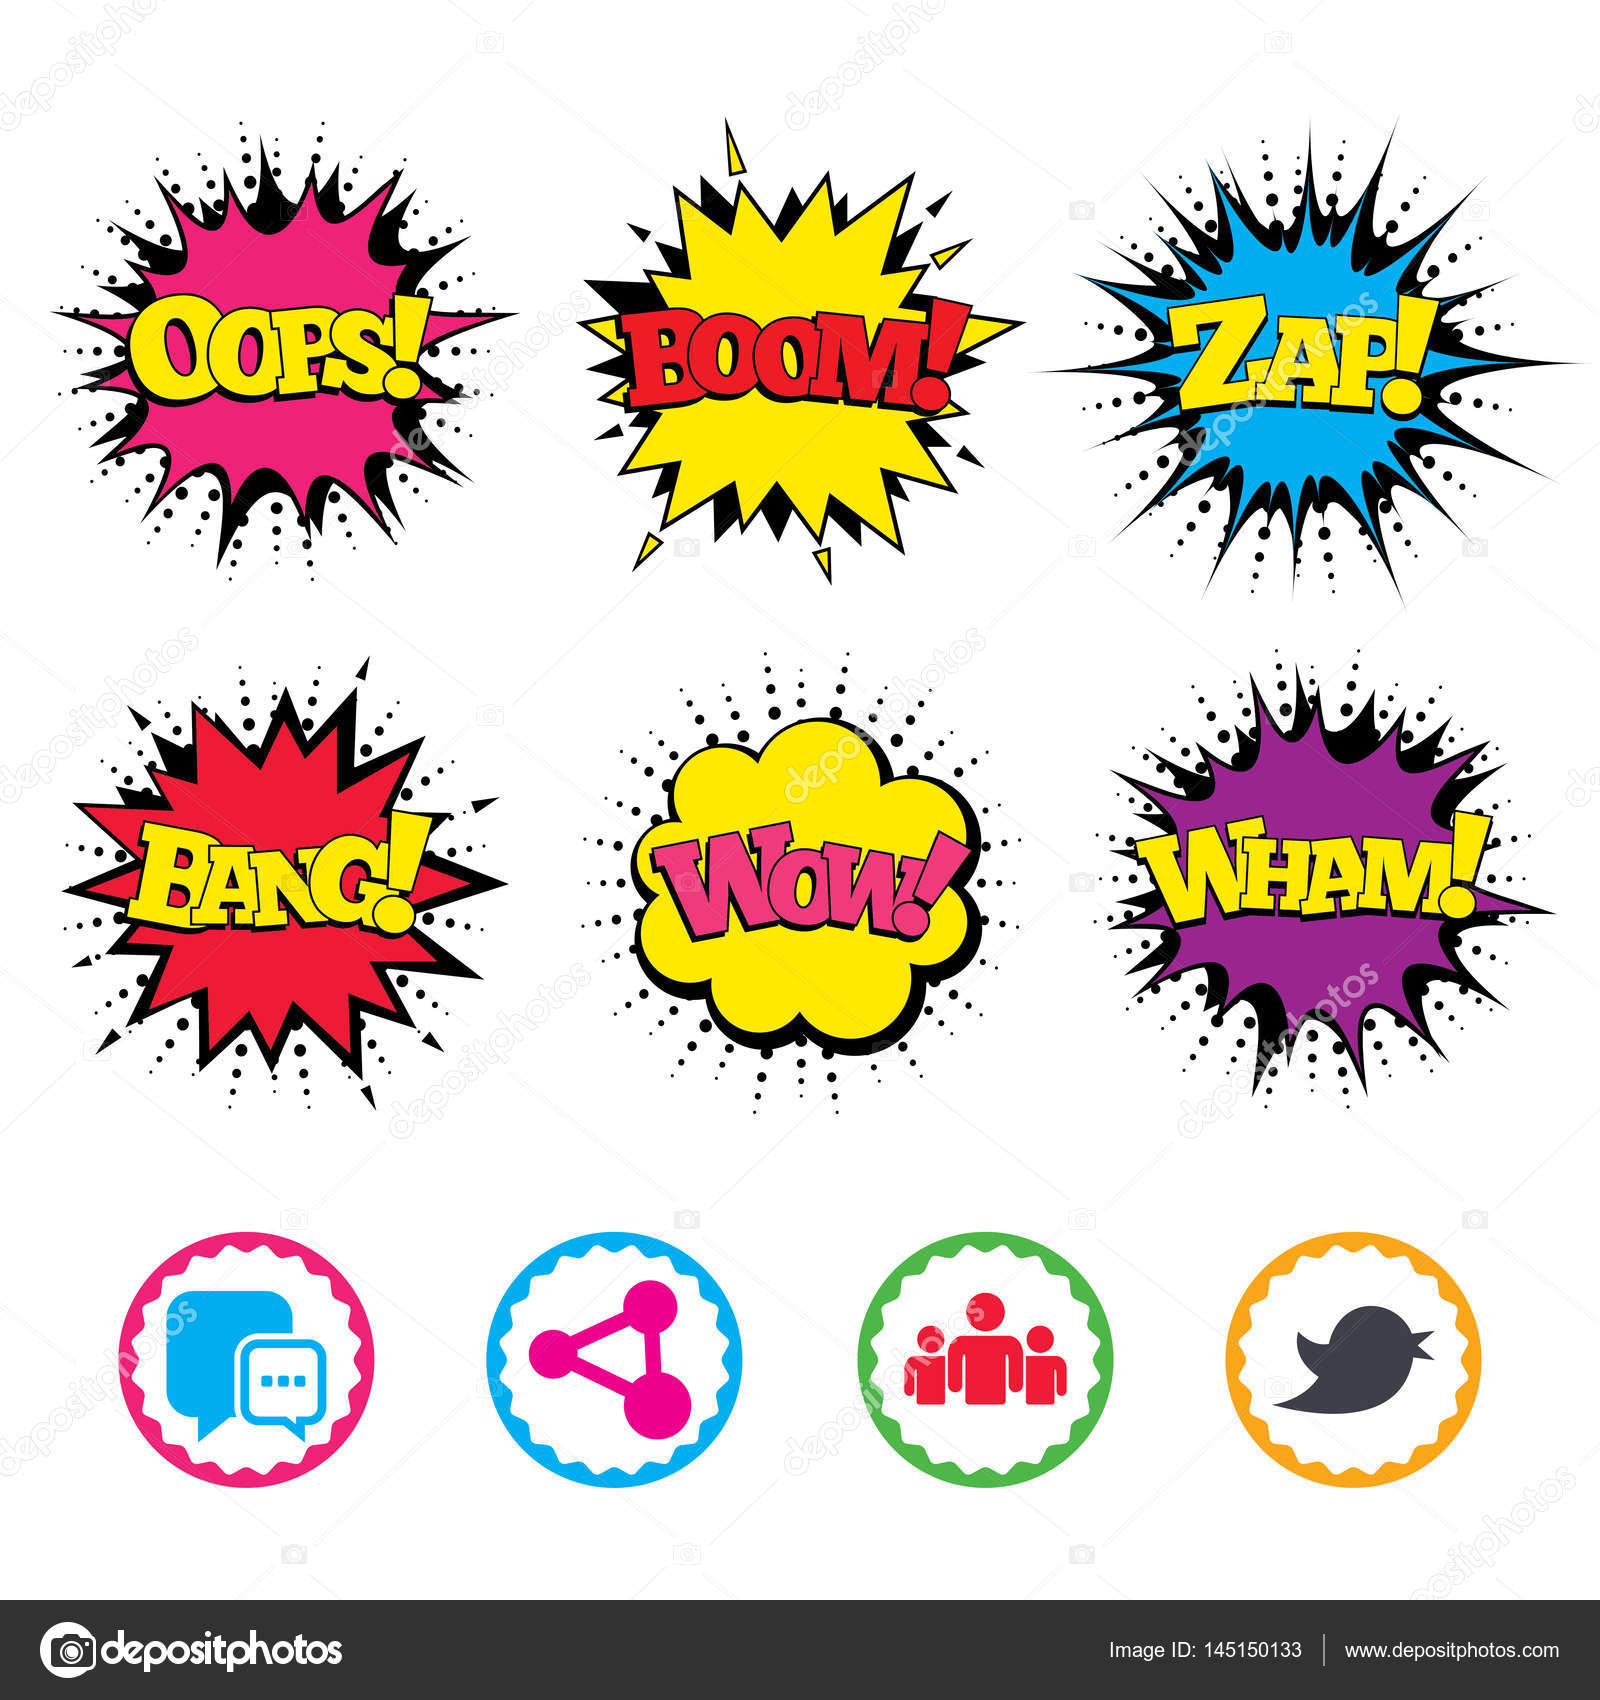 Noise clipart wham Icons effects Vector sound Comic